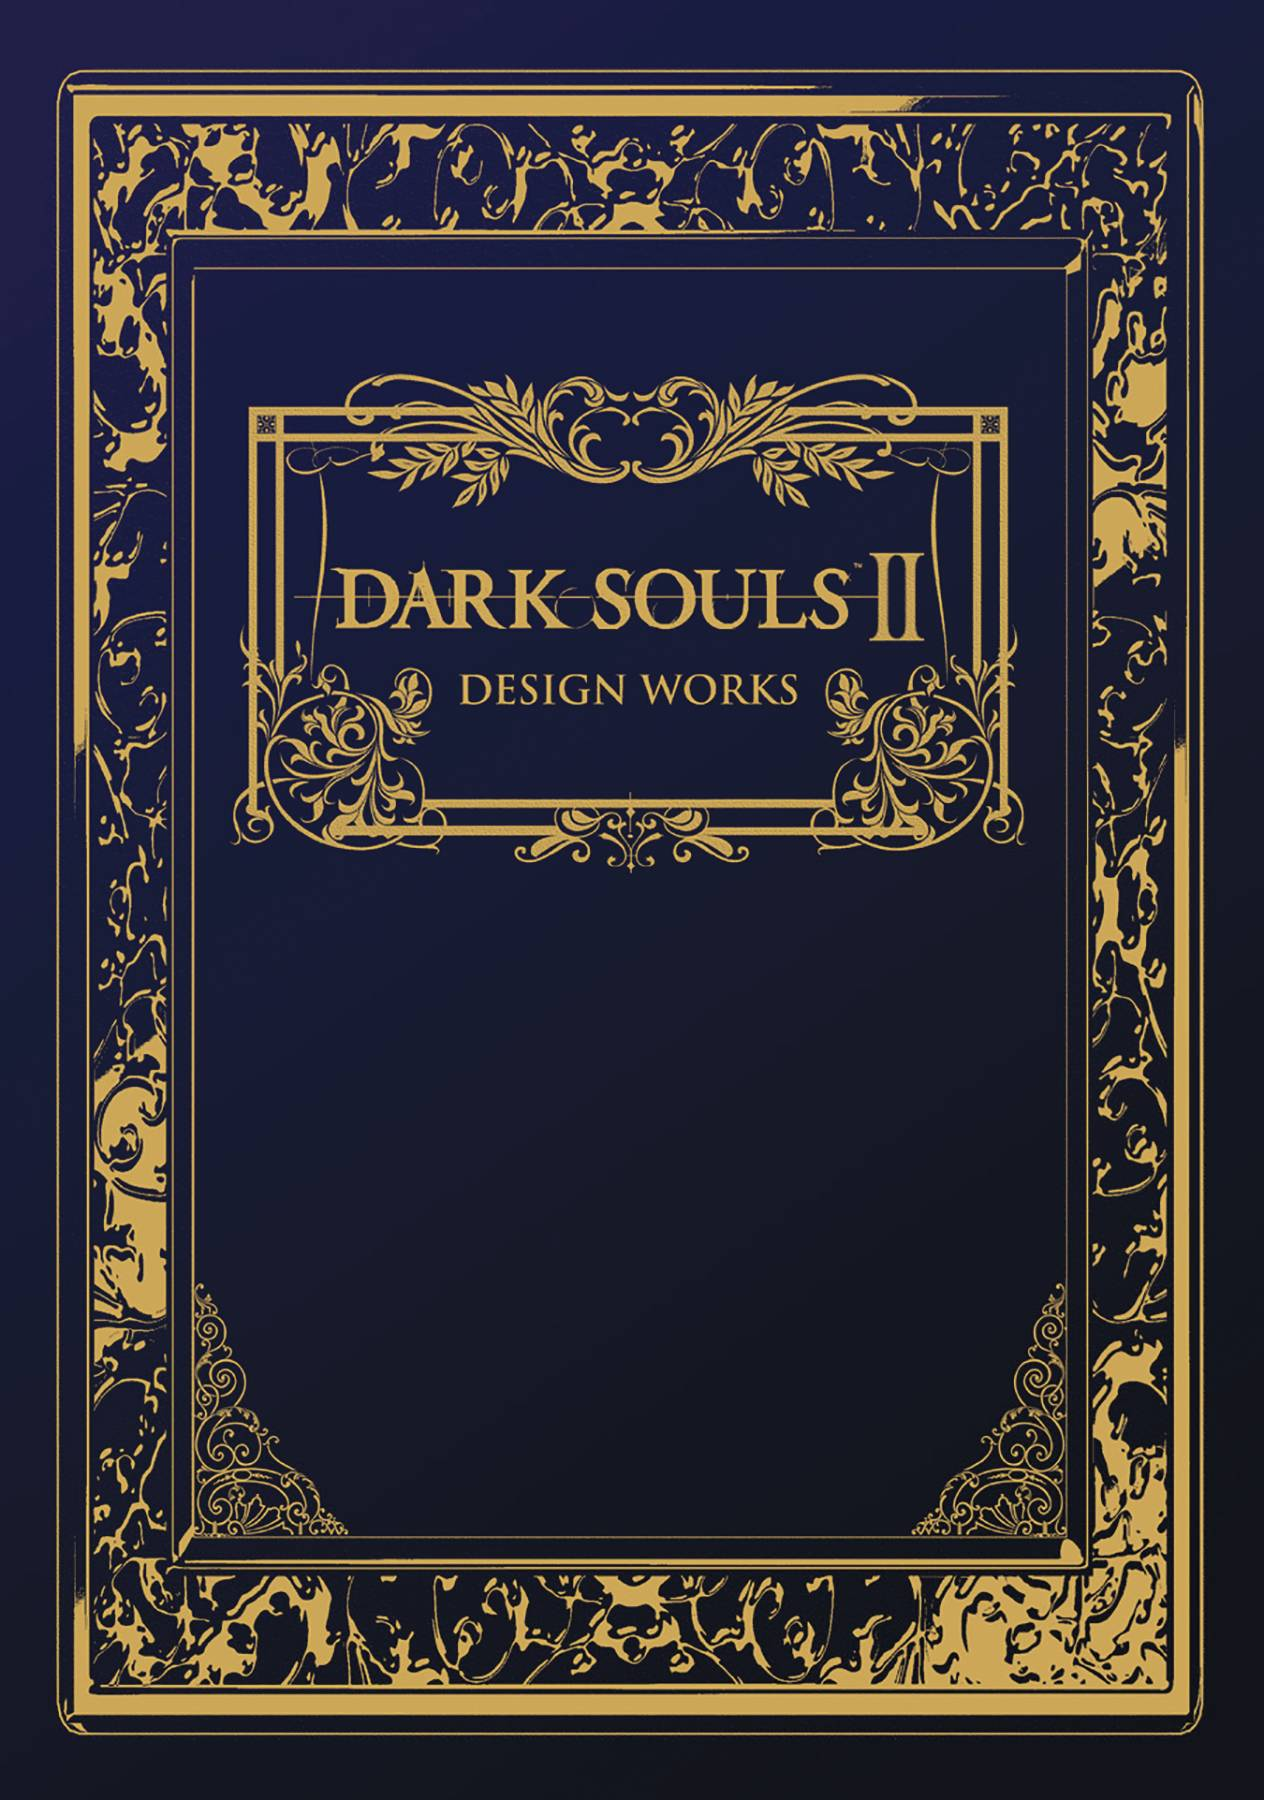 DARK SOULS II DESIGN WORKS HC